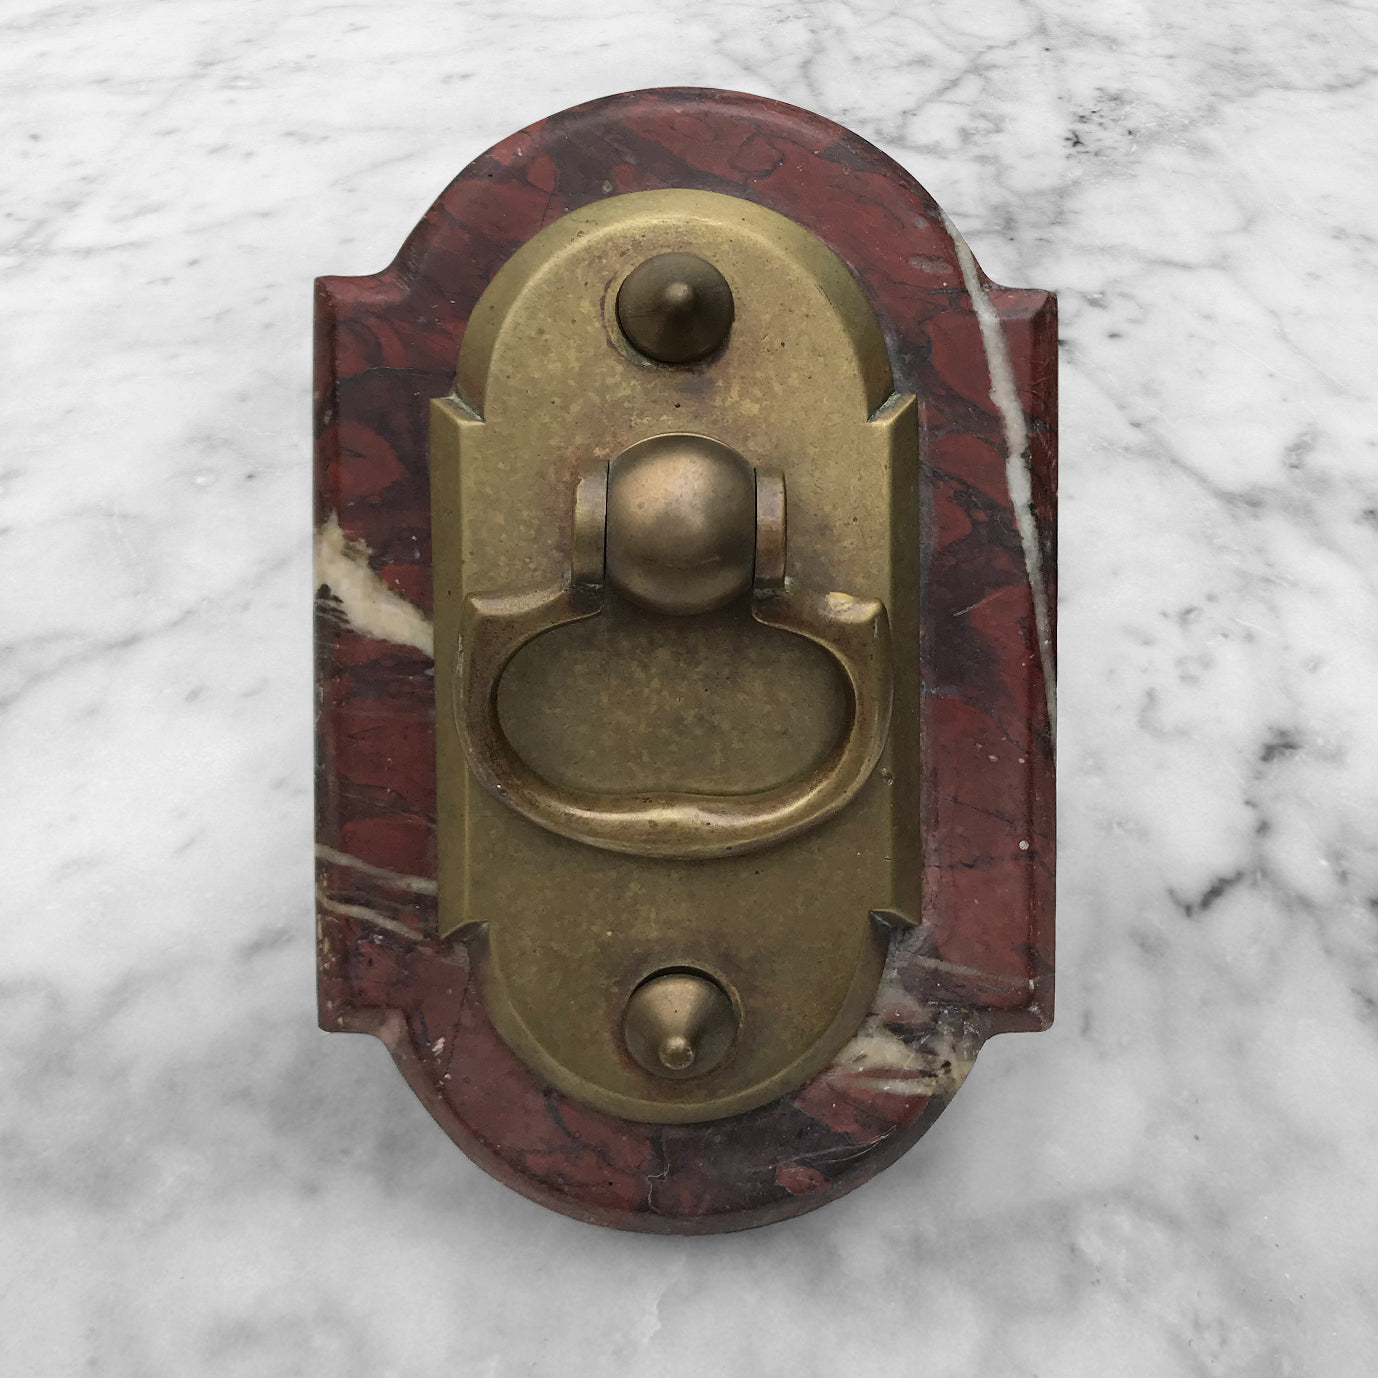 Nice and chunky French Door Bell Pull. The marble is a deep rusty red with creamy white and chocolate veins. That is topped with a brass pull handle that has a good smooth rocker action to it - BUY NOW - www.intovintage.co.uk